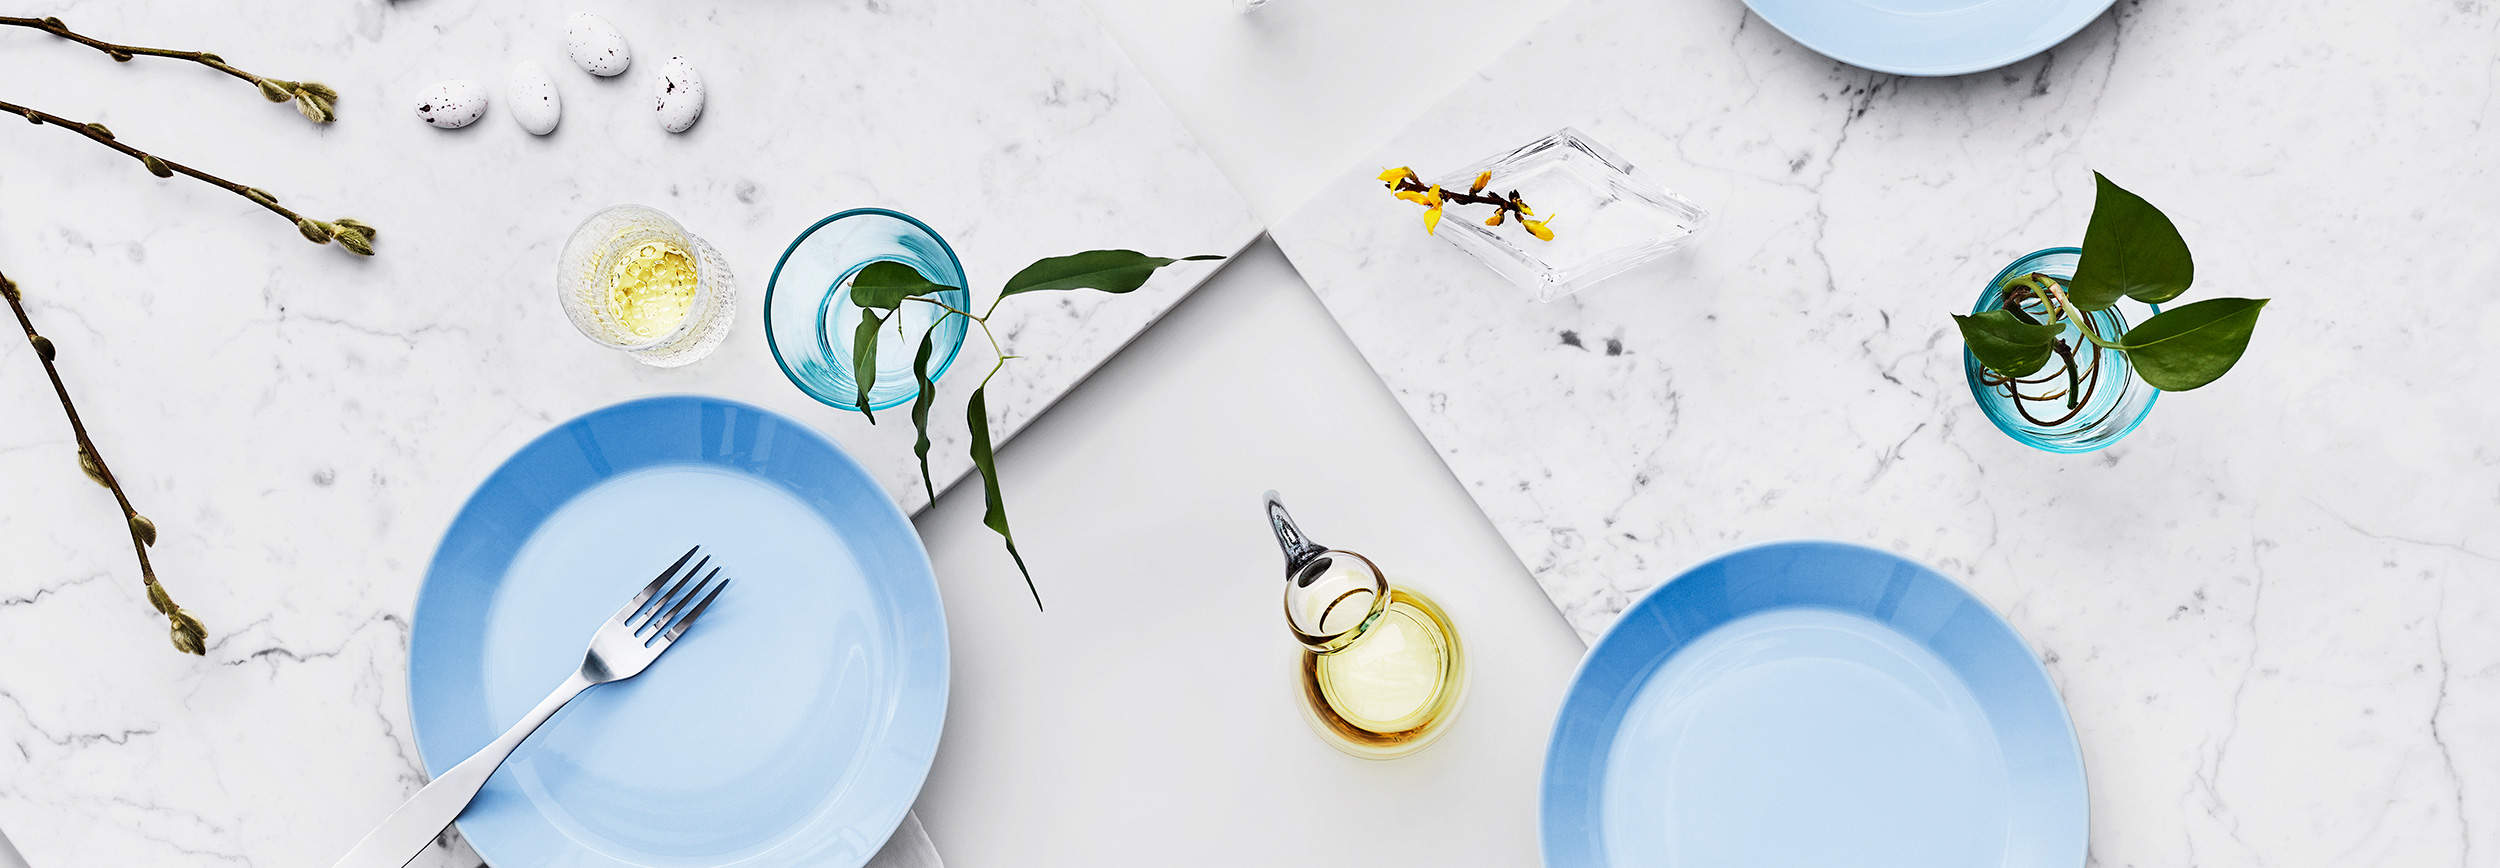 https://iittala.scene7.com/is/image/iittala/iittala_hero_easter?$hero$